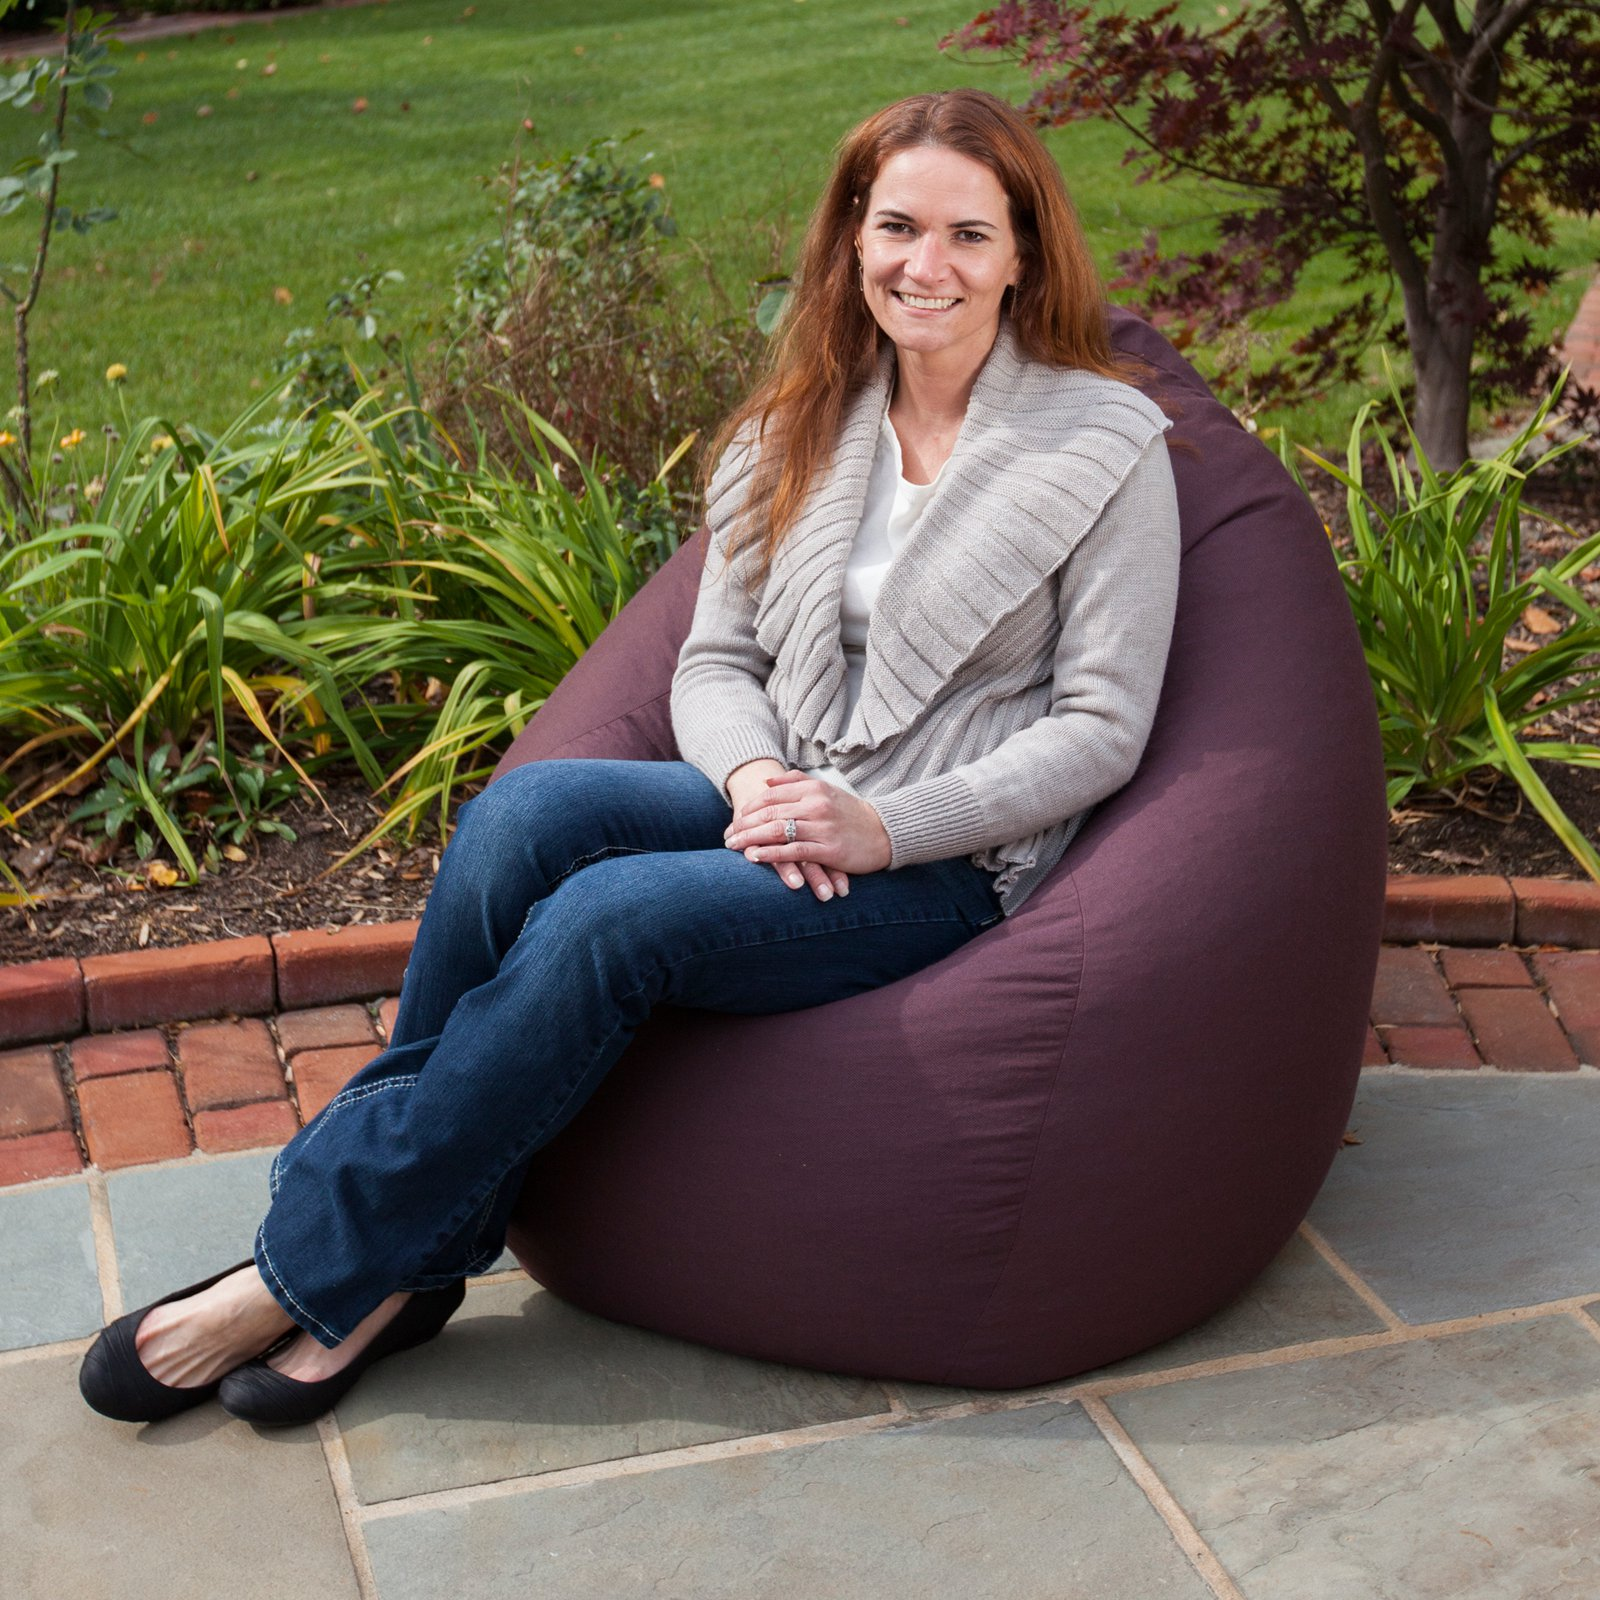 Gold Medal 30011685981TD Outdoor-Indoor Weather Resistant Tear Drop Bean Bag - Fife Plum